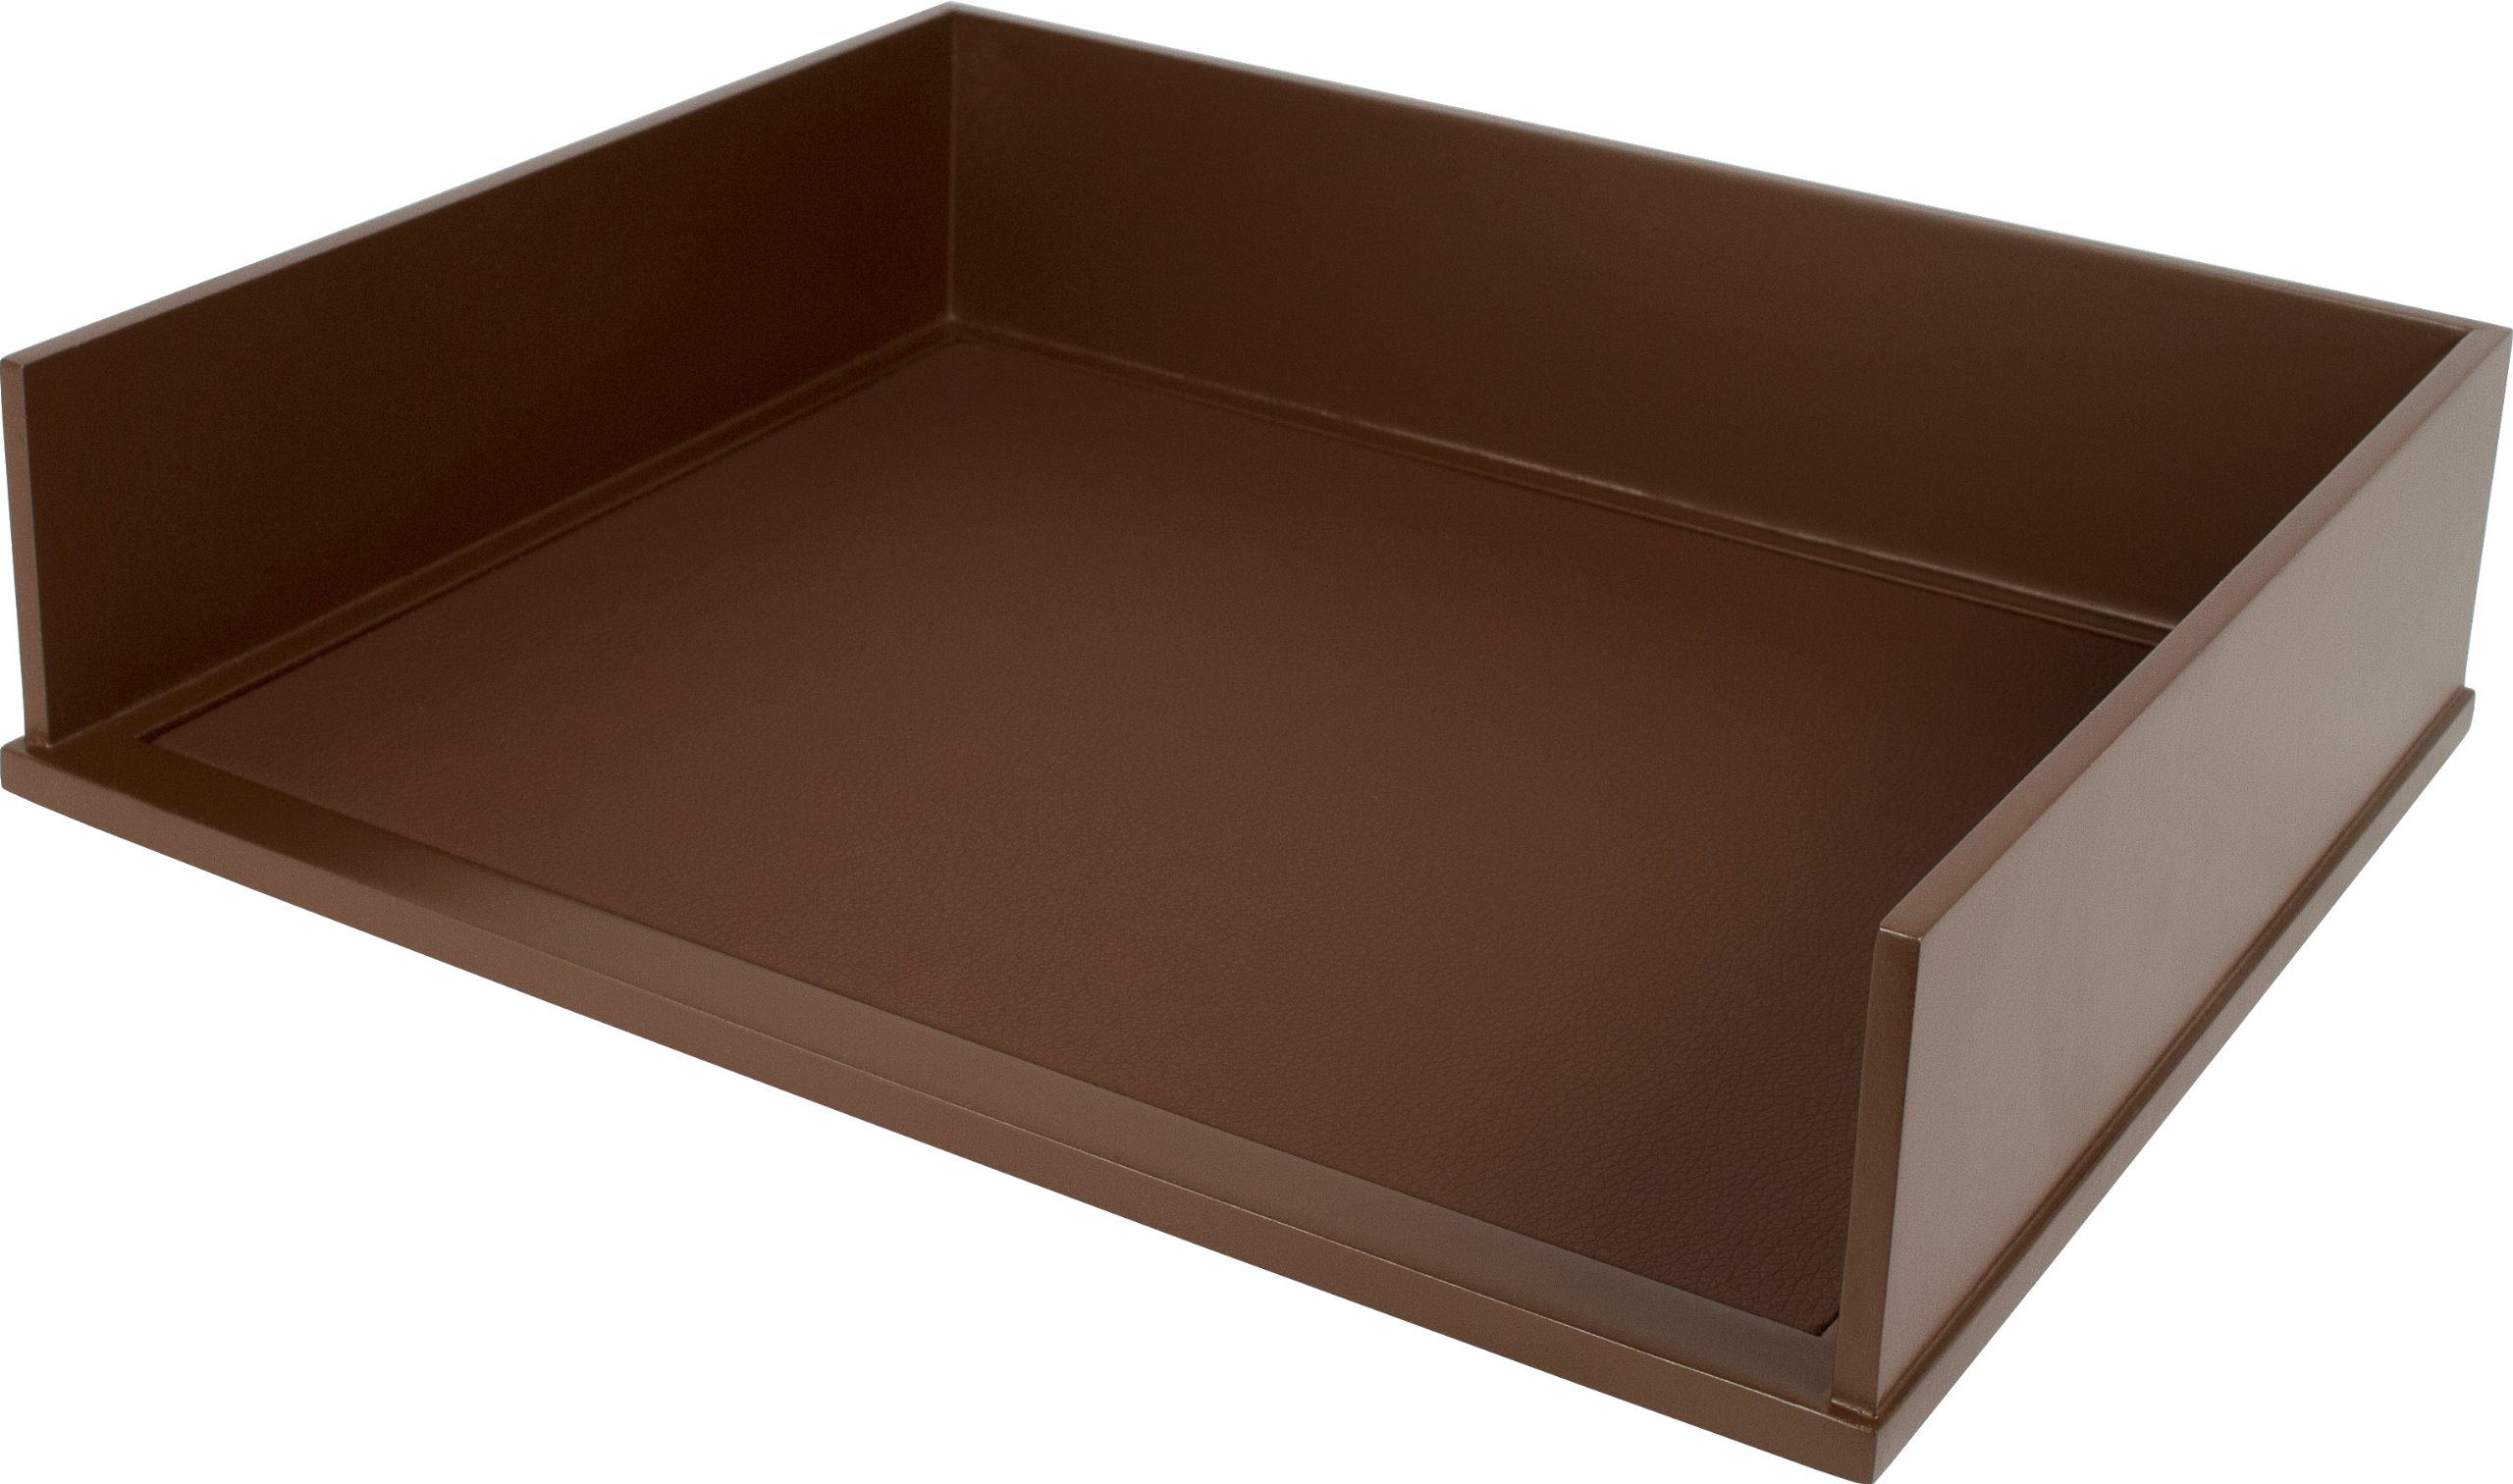 Victor Wood Mocha Brown Collection, Letter Tray, Brown, (B1154)